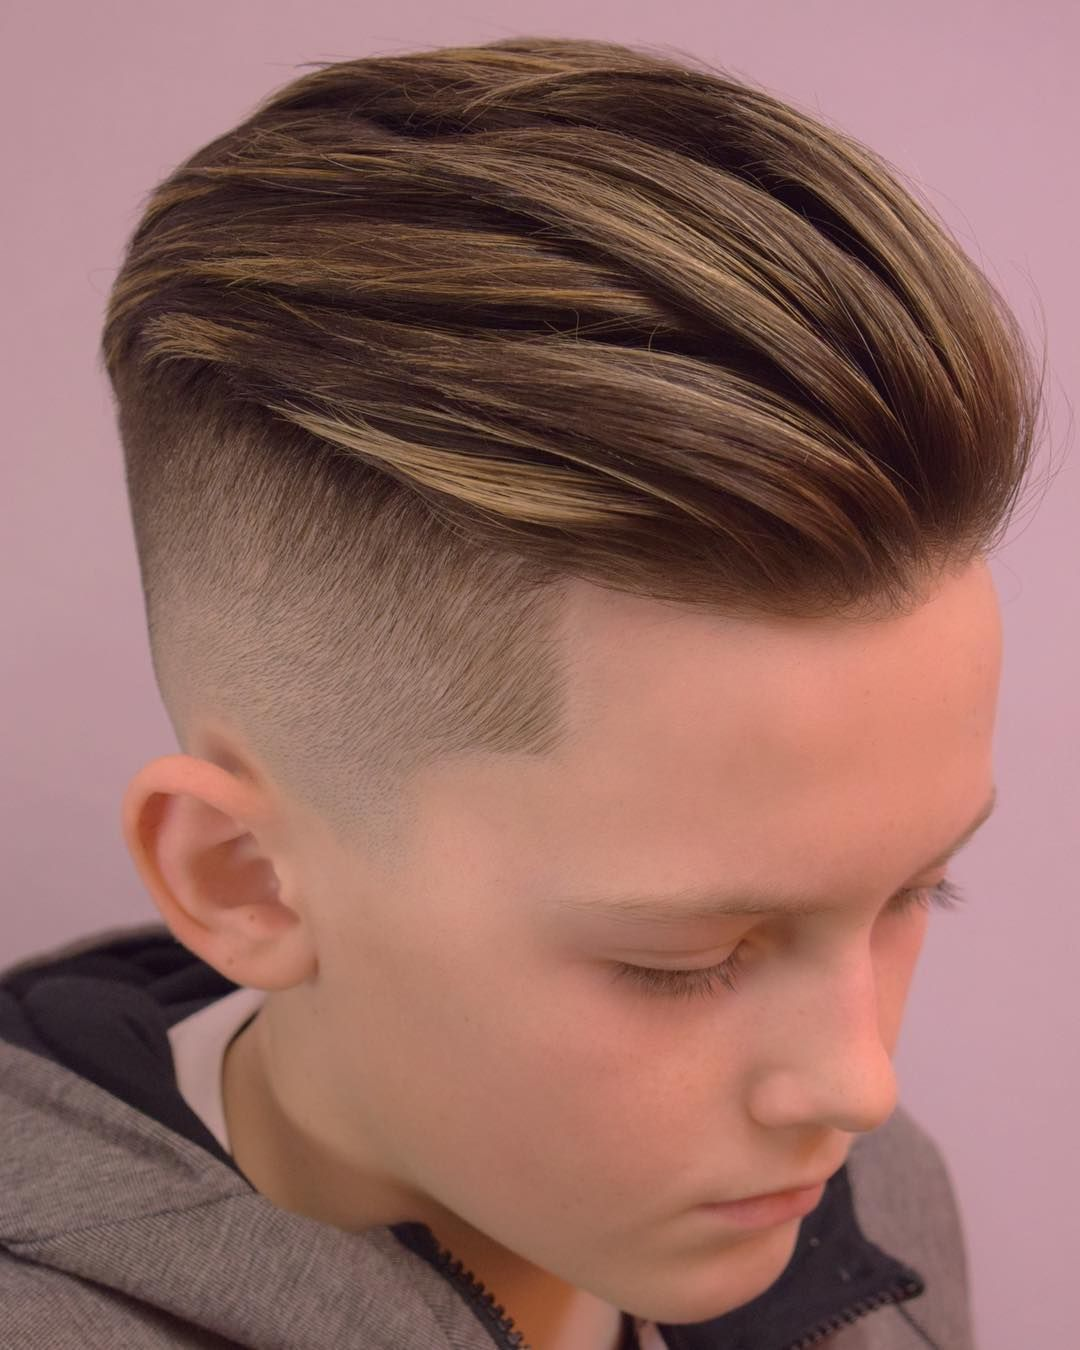 Boy Hairstyle Adorable Undercuts Hairstyles Boys  Haircuits  Pinterest  Corte De Pelo